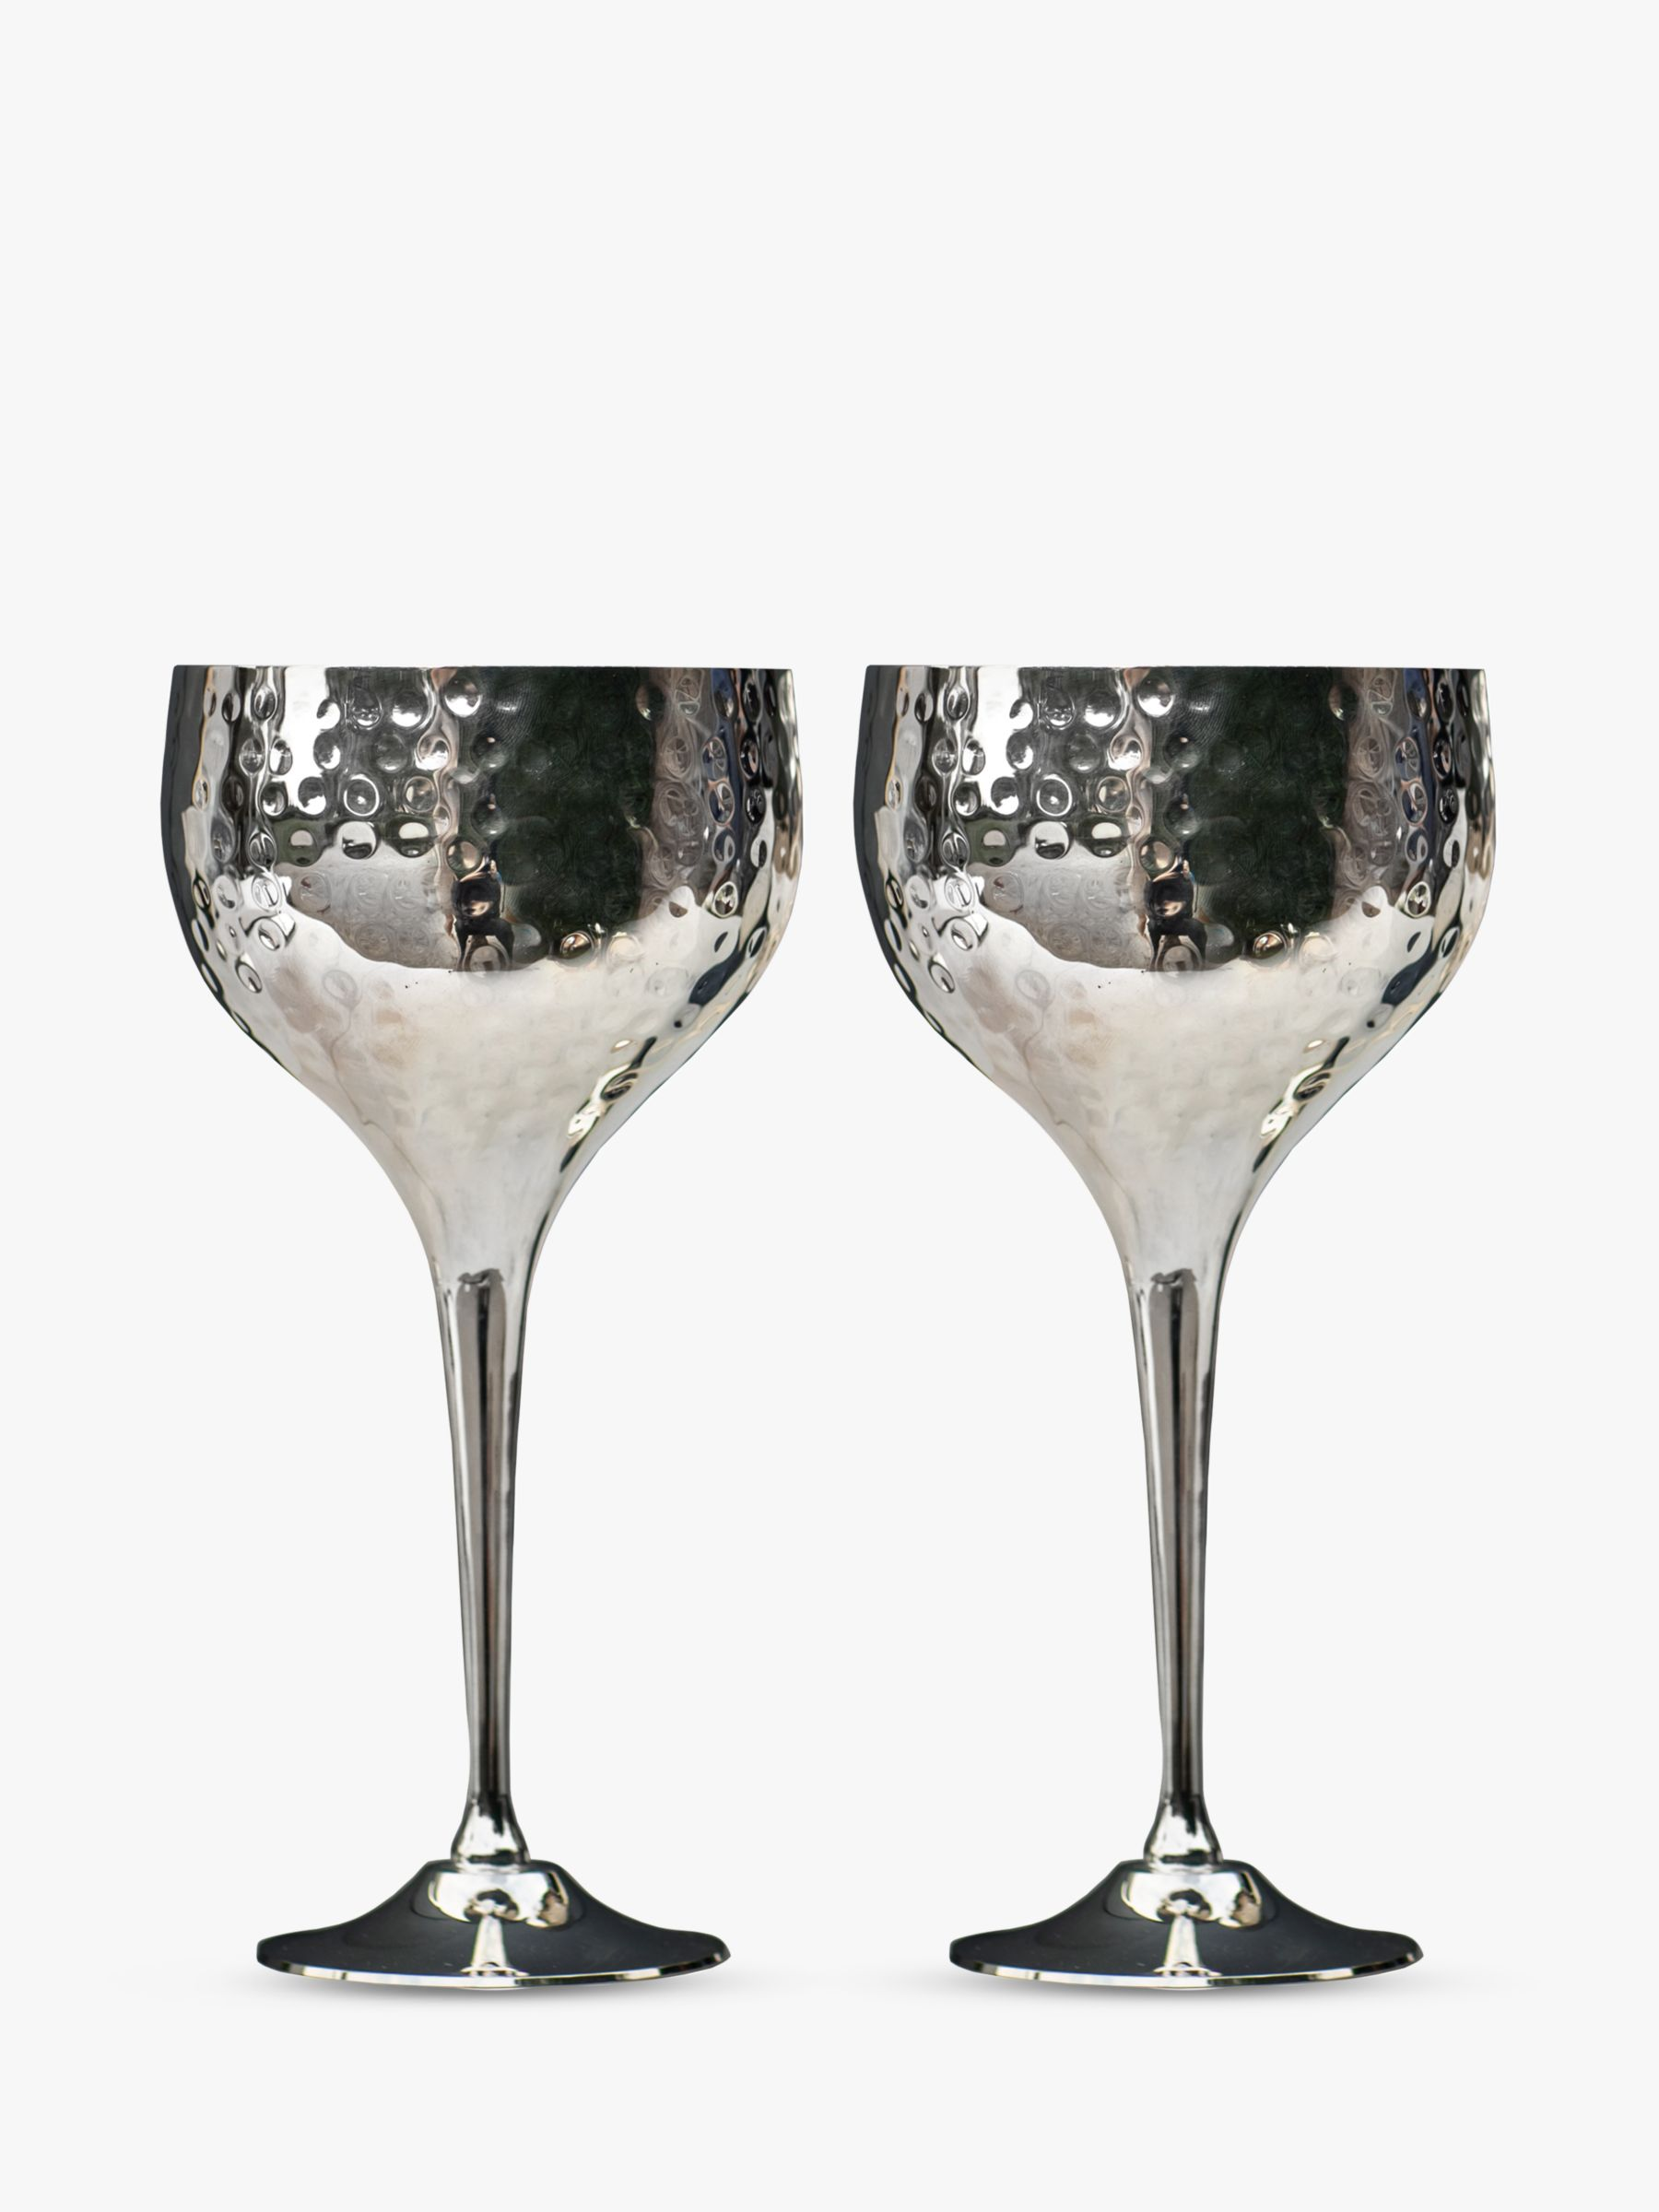 Culinary Concepts Culinary Concepts Hammered Wine Goblets, Box of 2, Silver